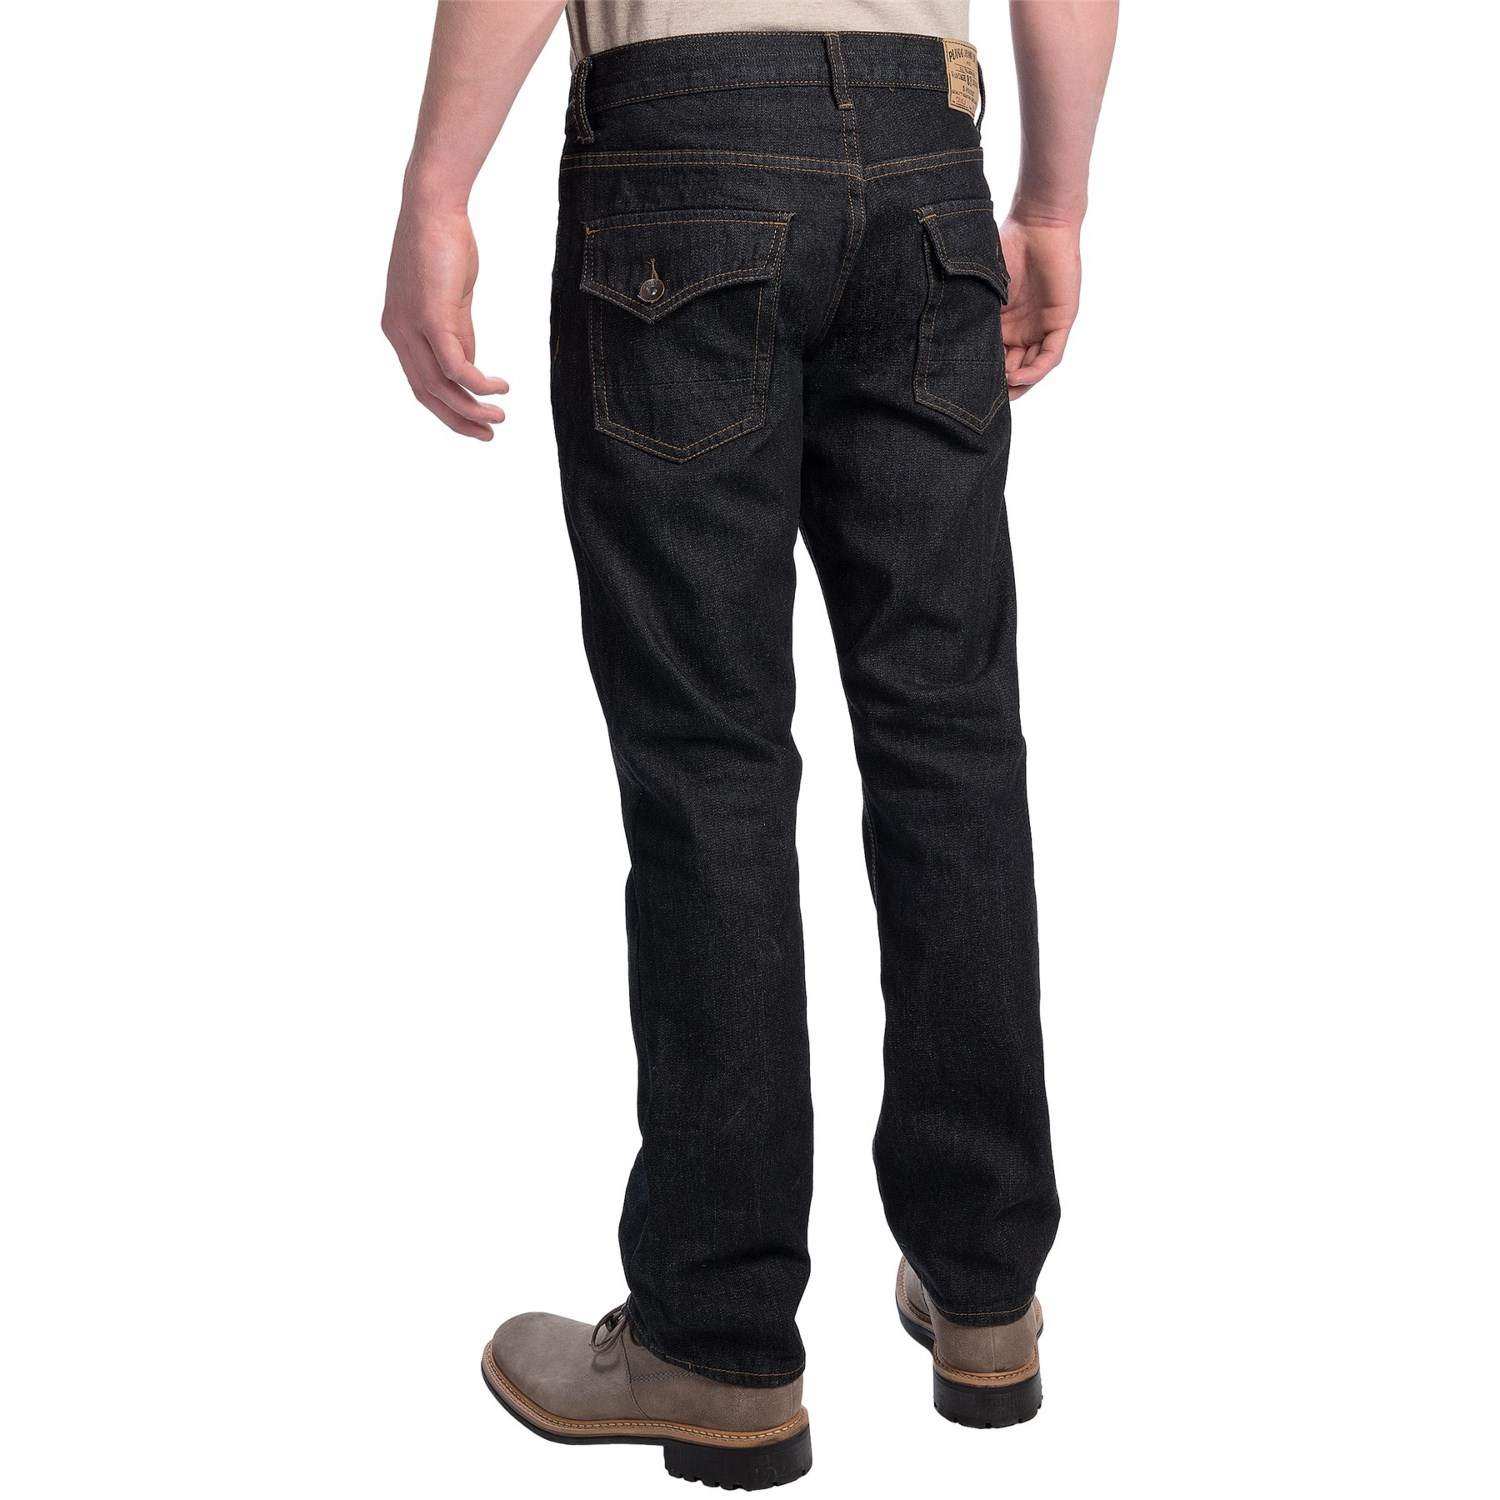 9379g 2 Plugg Slim Straight Fit Jeans With Flap Back